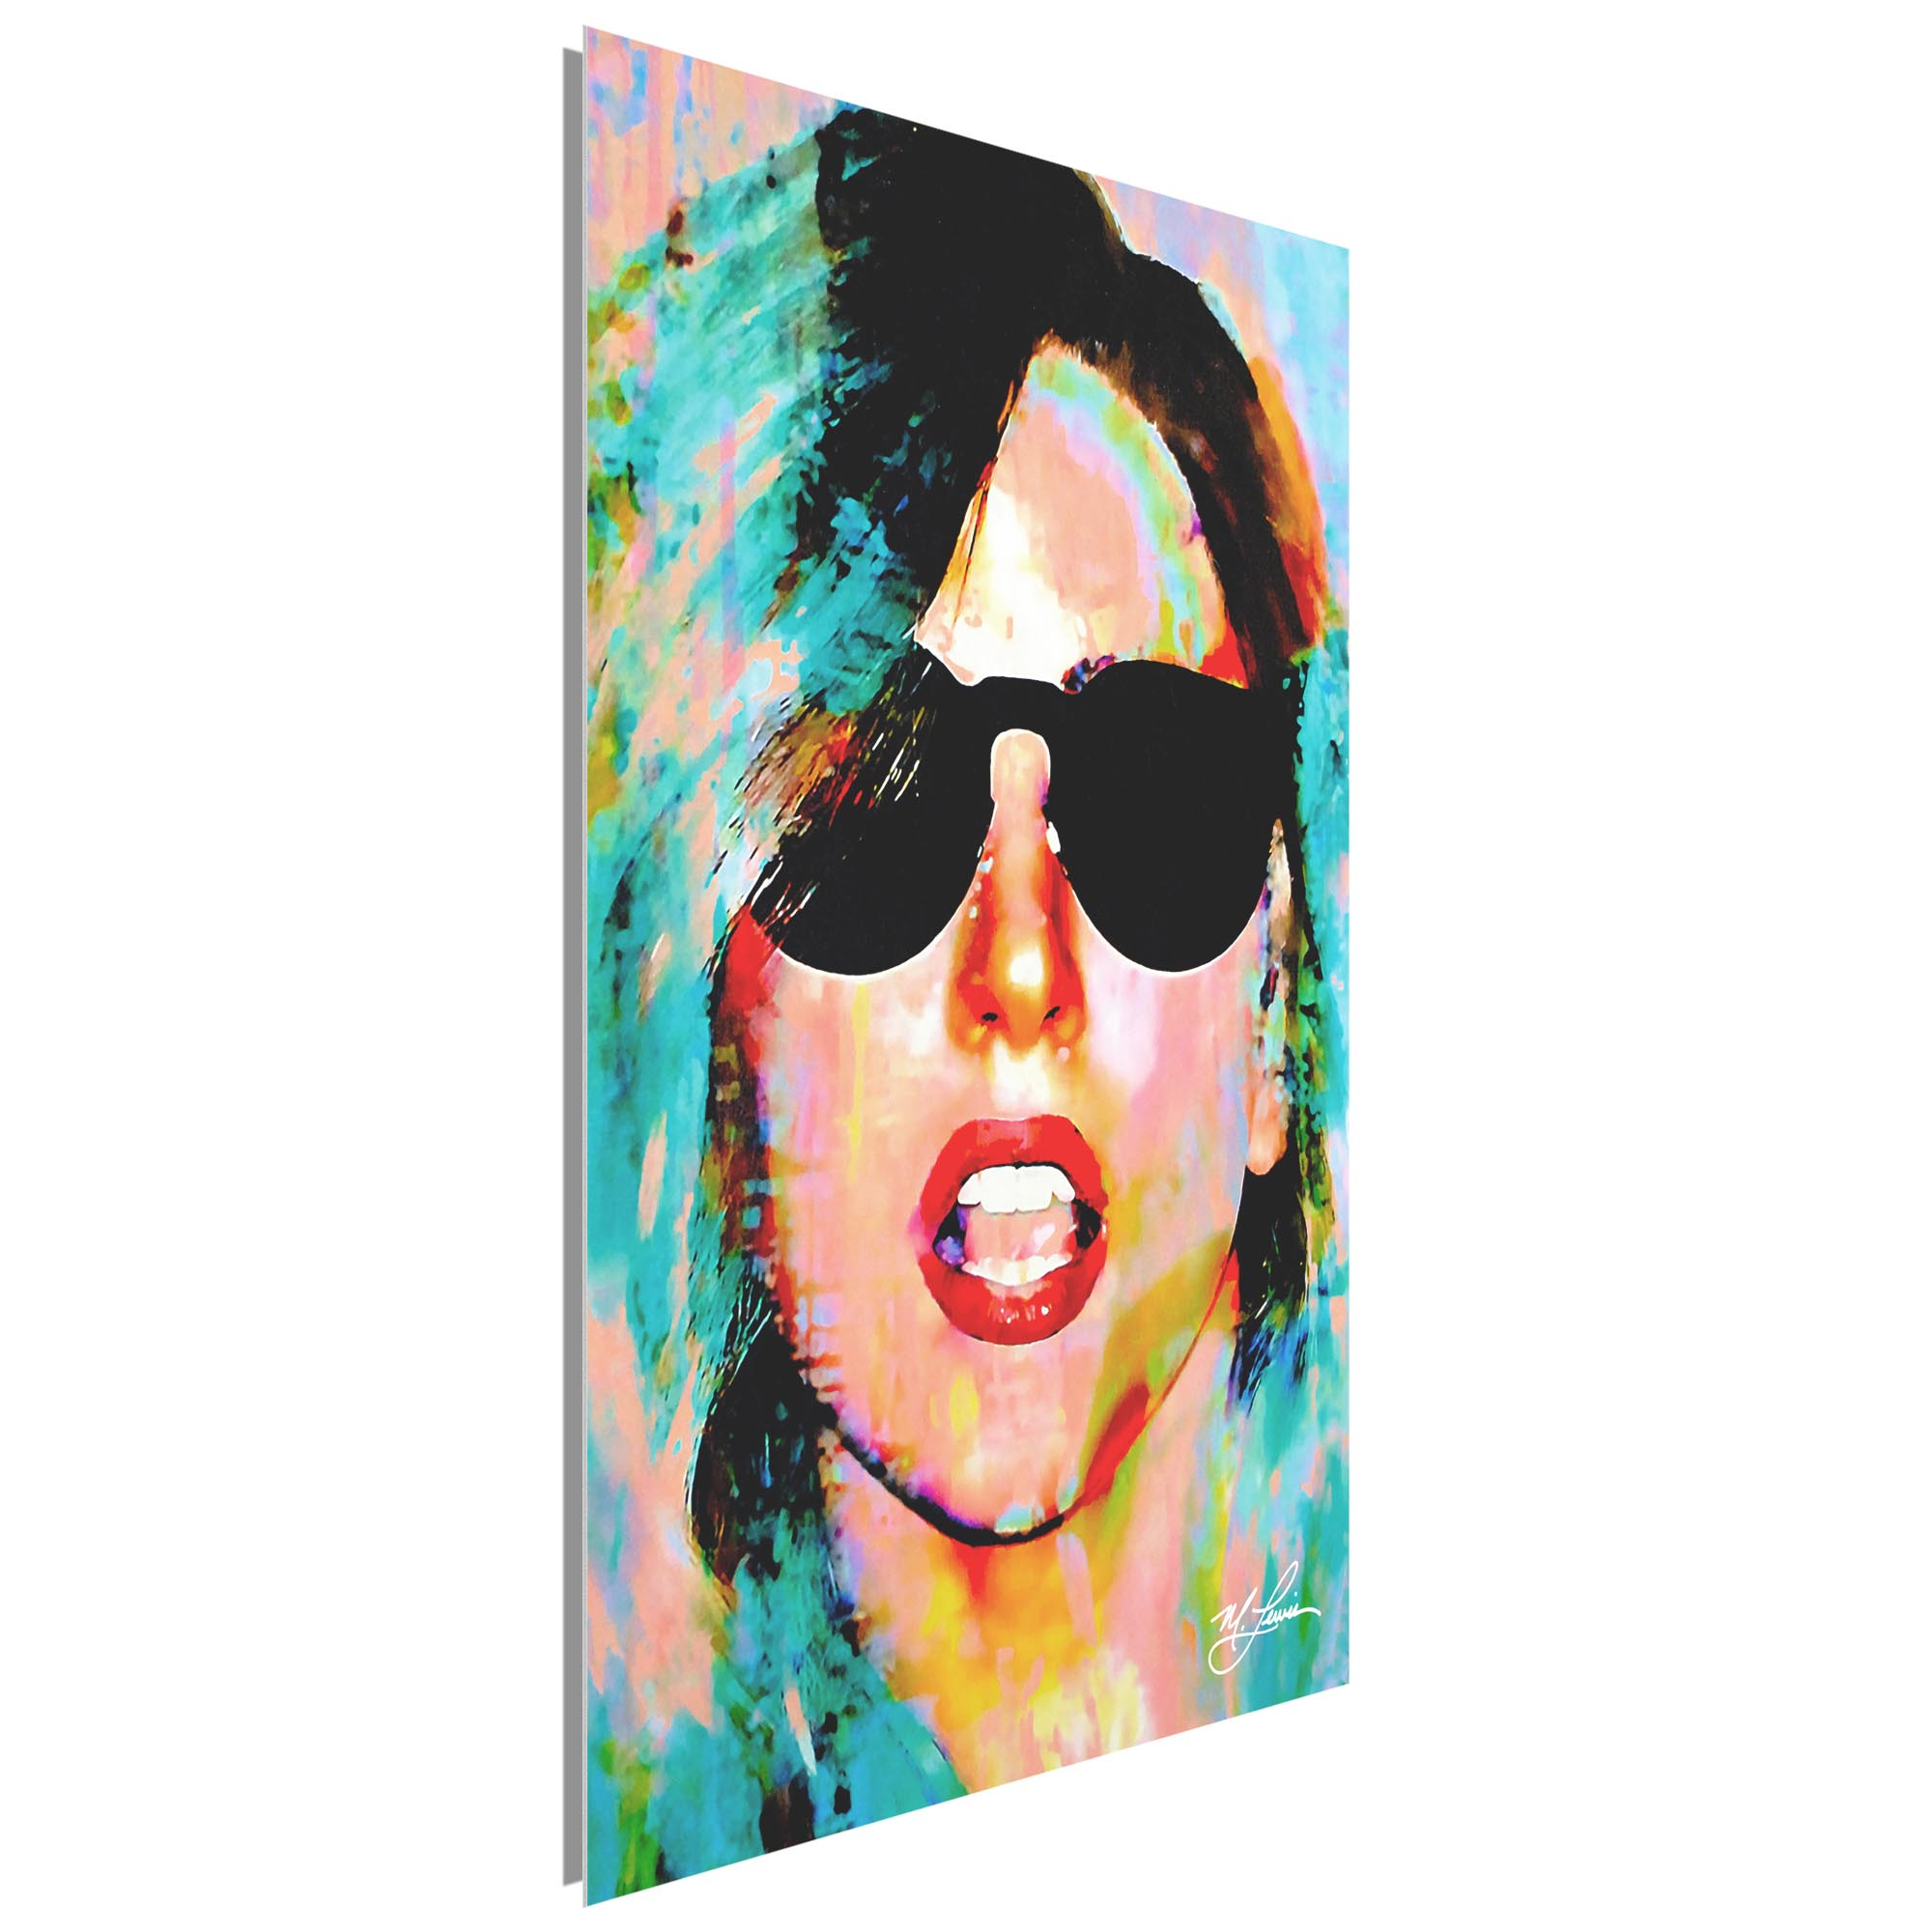 Lady Gaga Everyday Art by Mark Lewis - Contemporary Pop Art on Metal or Plexiglass - Image 2